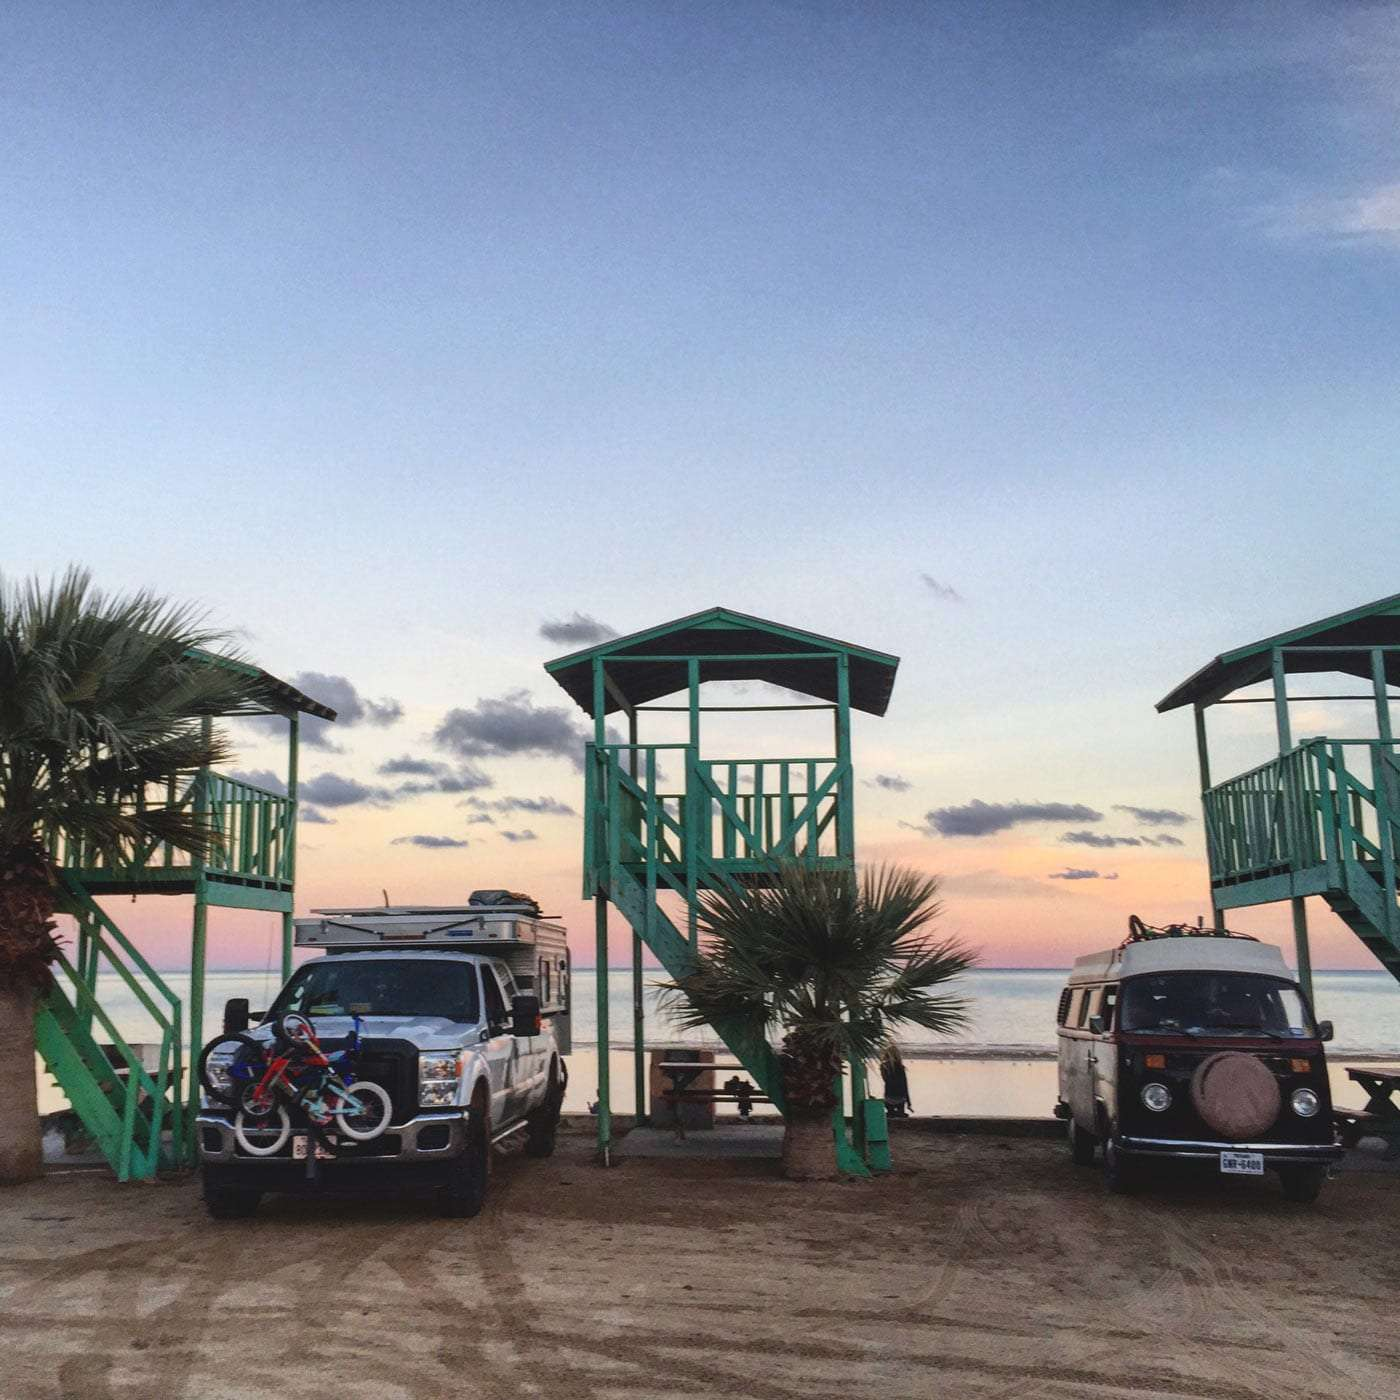 a Four Wheel Truck camper and a 1978 Volkswagen Bus parked beneath palapas in San Felipe